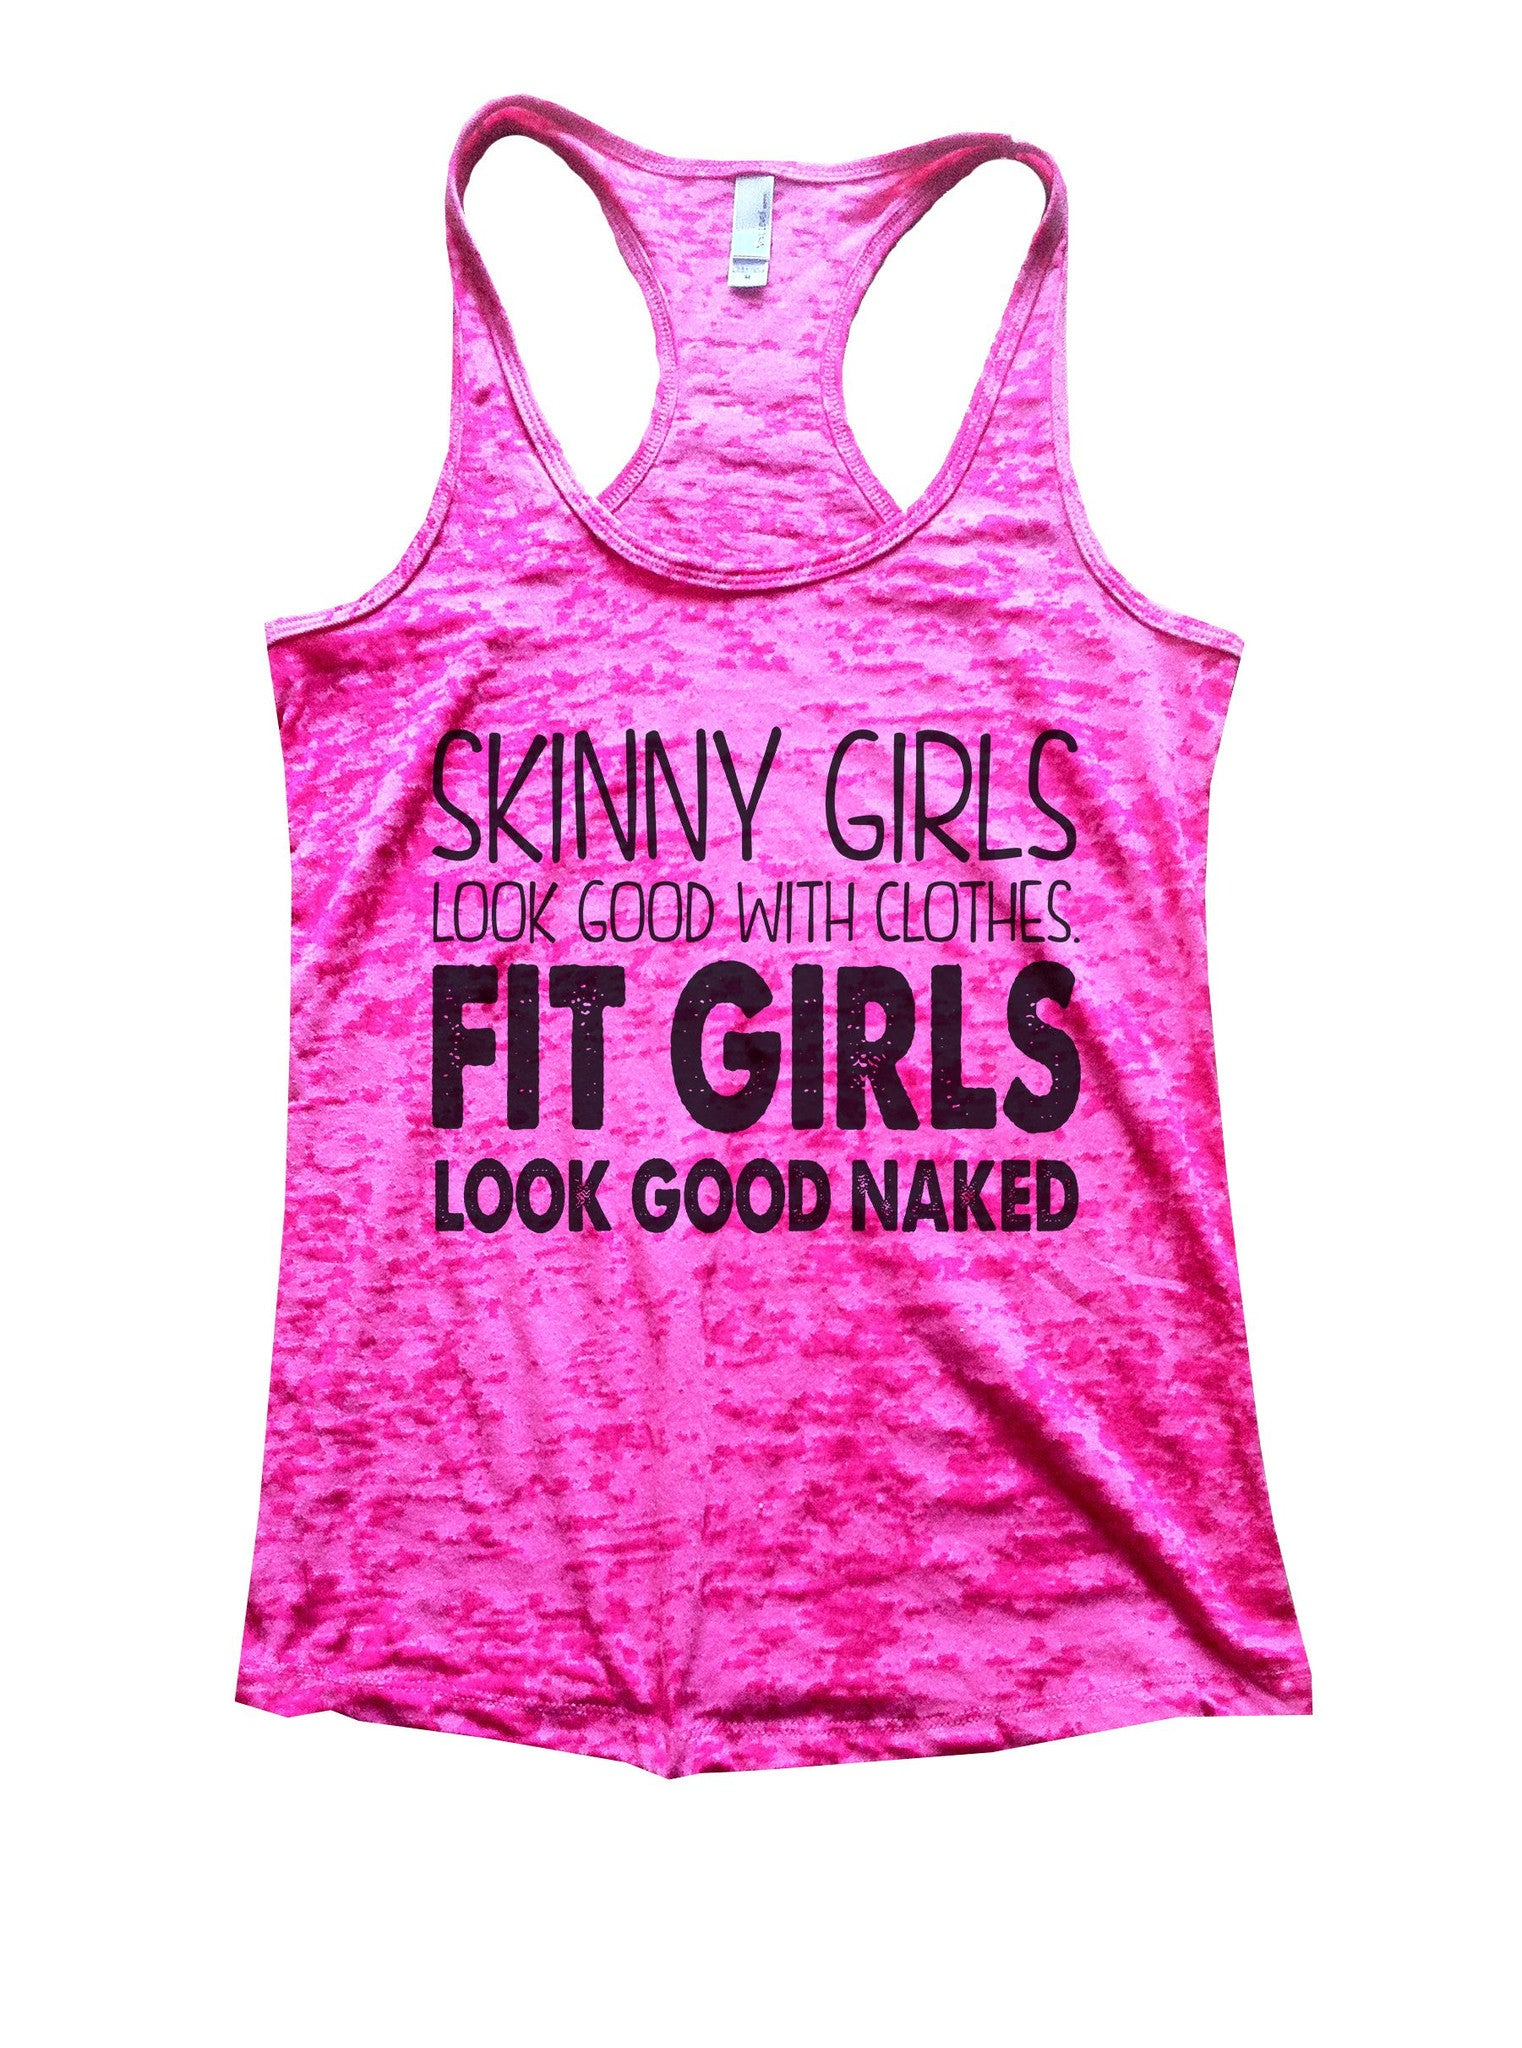 Skinny Girls Look Good With Clothes. Fit Girls Look Good Naked Burnout Tank Top By BurnoutTankTops.com - 916 - Funny Shirts Tank Tops Burnouts and Triblends  - 2